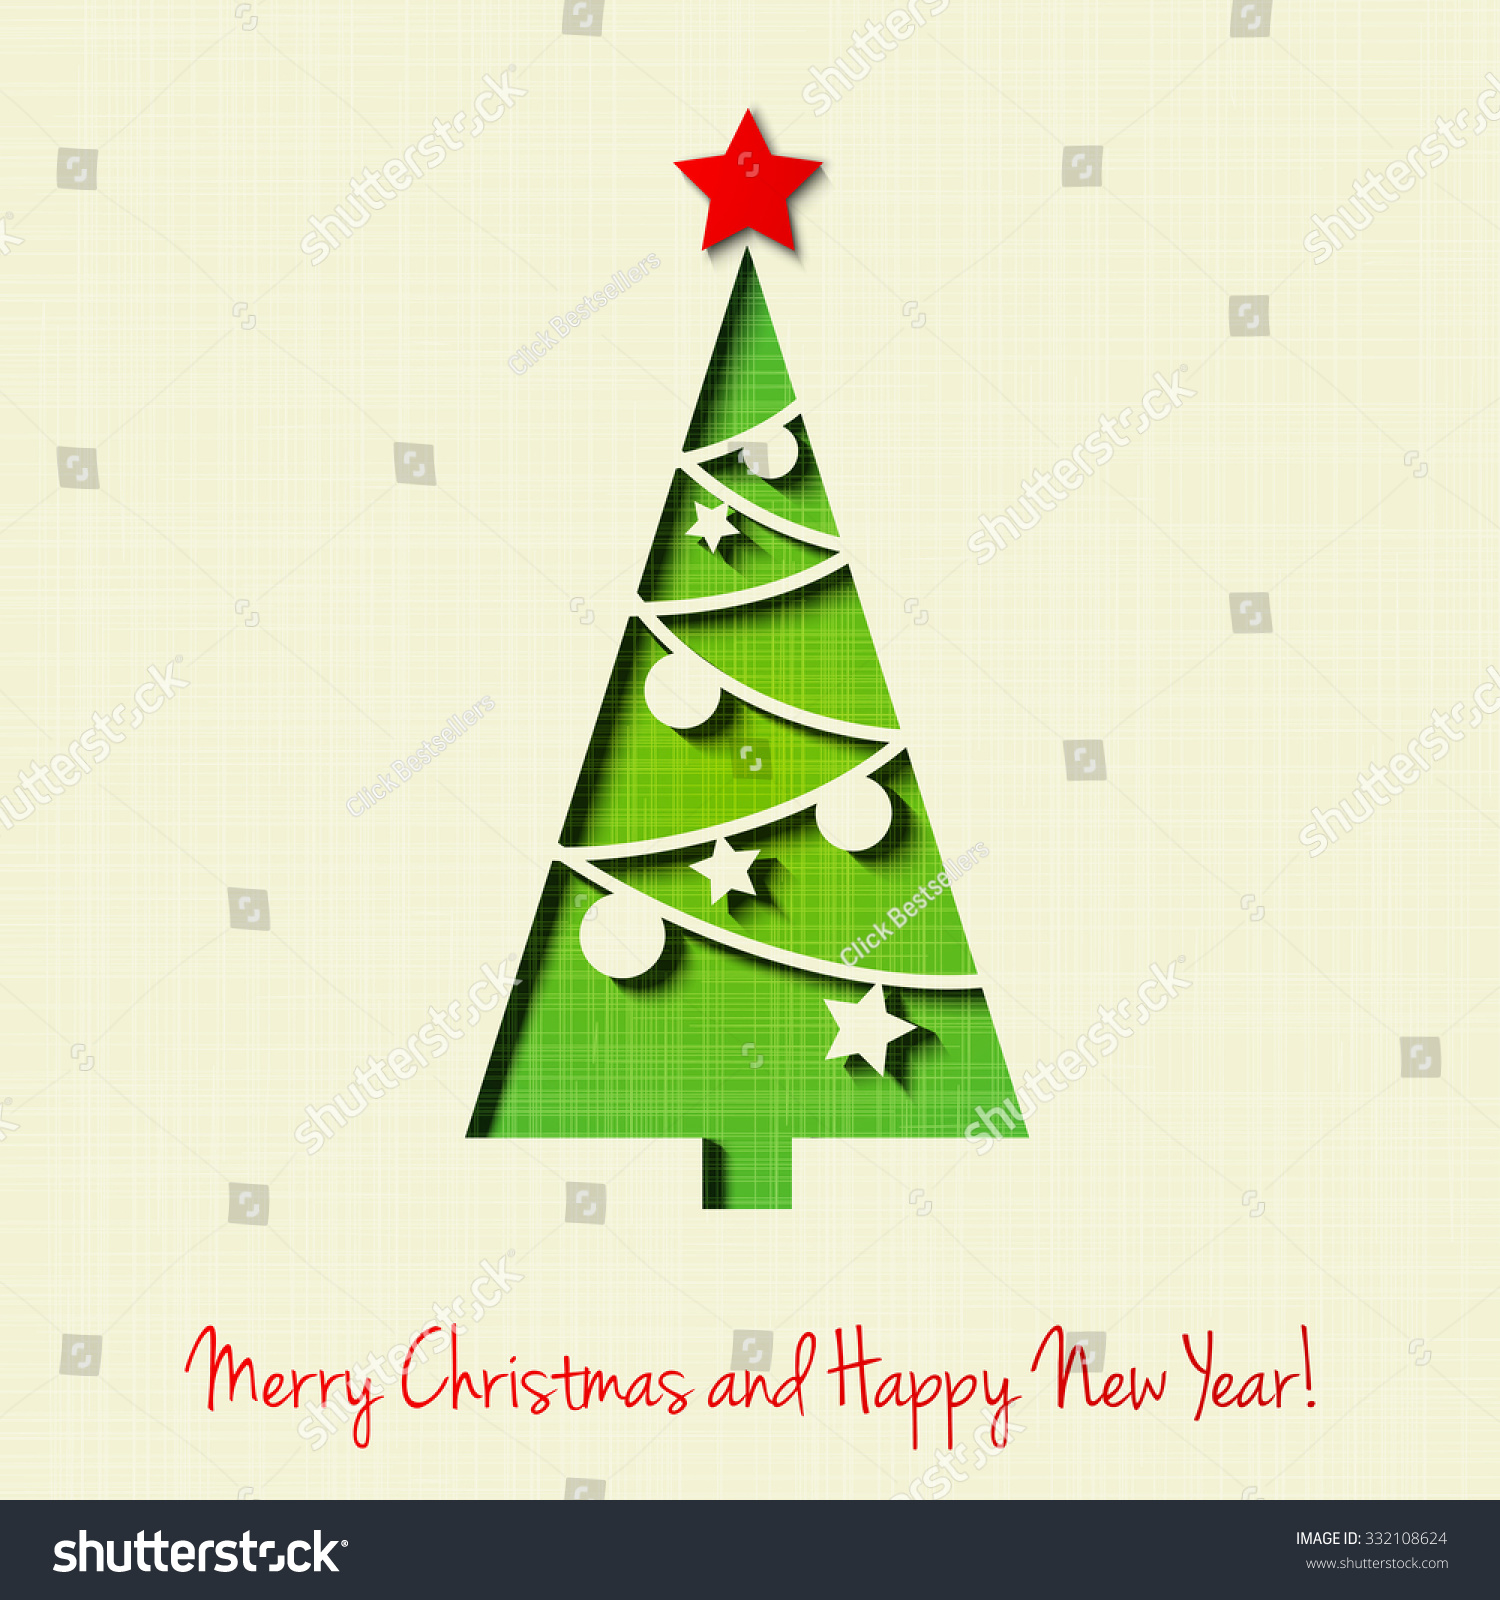 Greeting Card Merry Christmas Stock